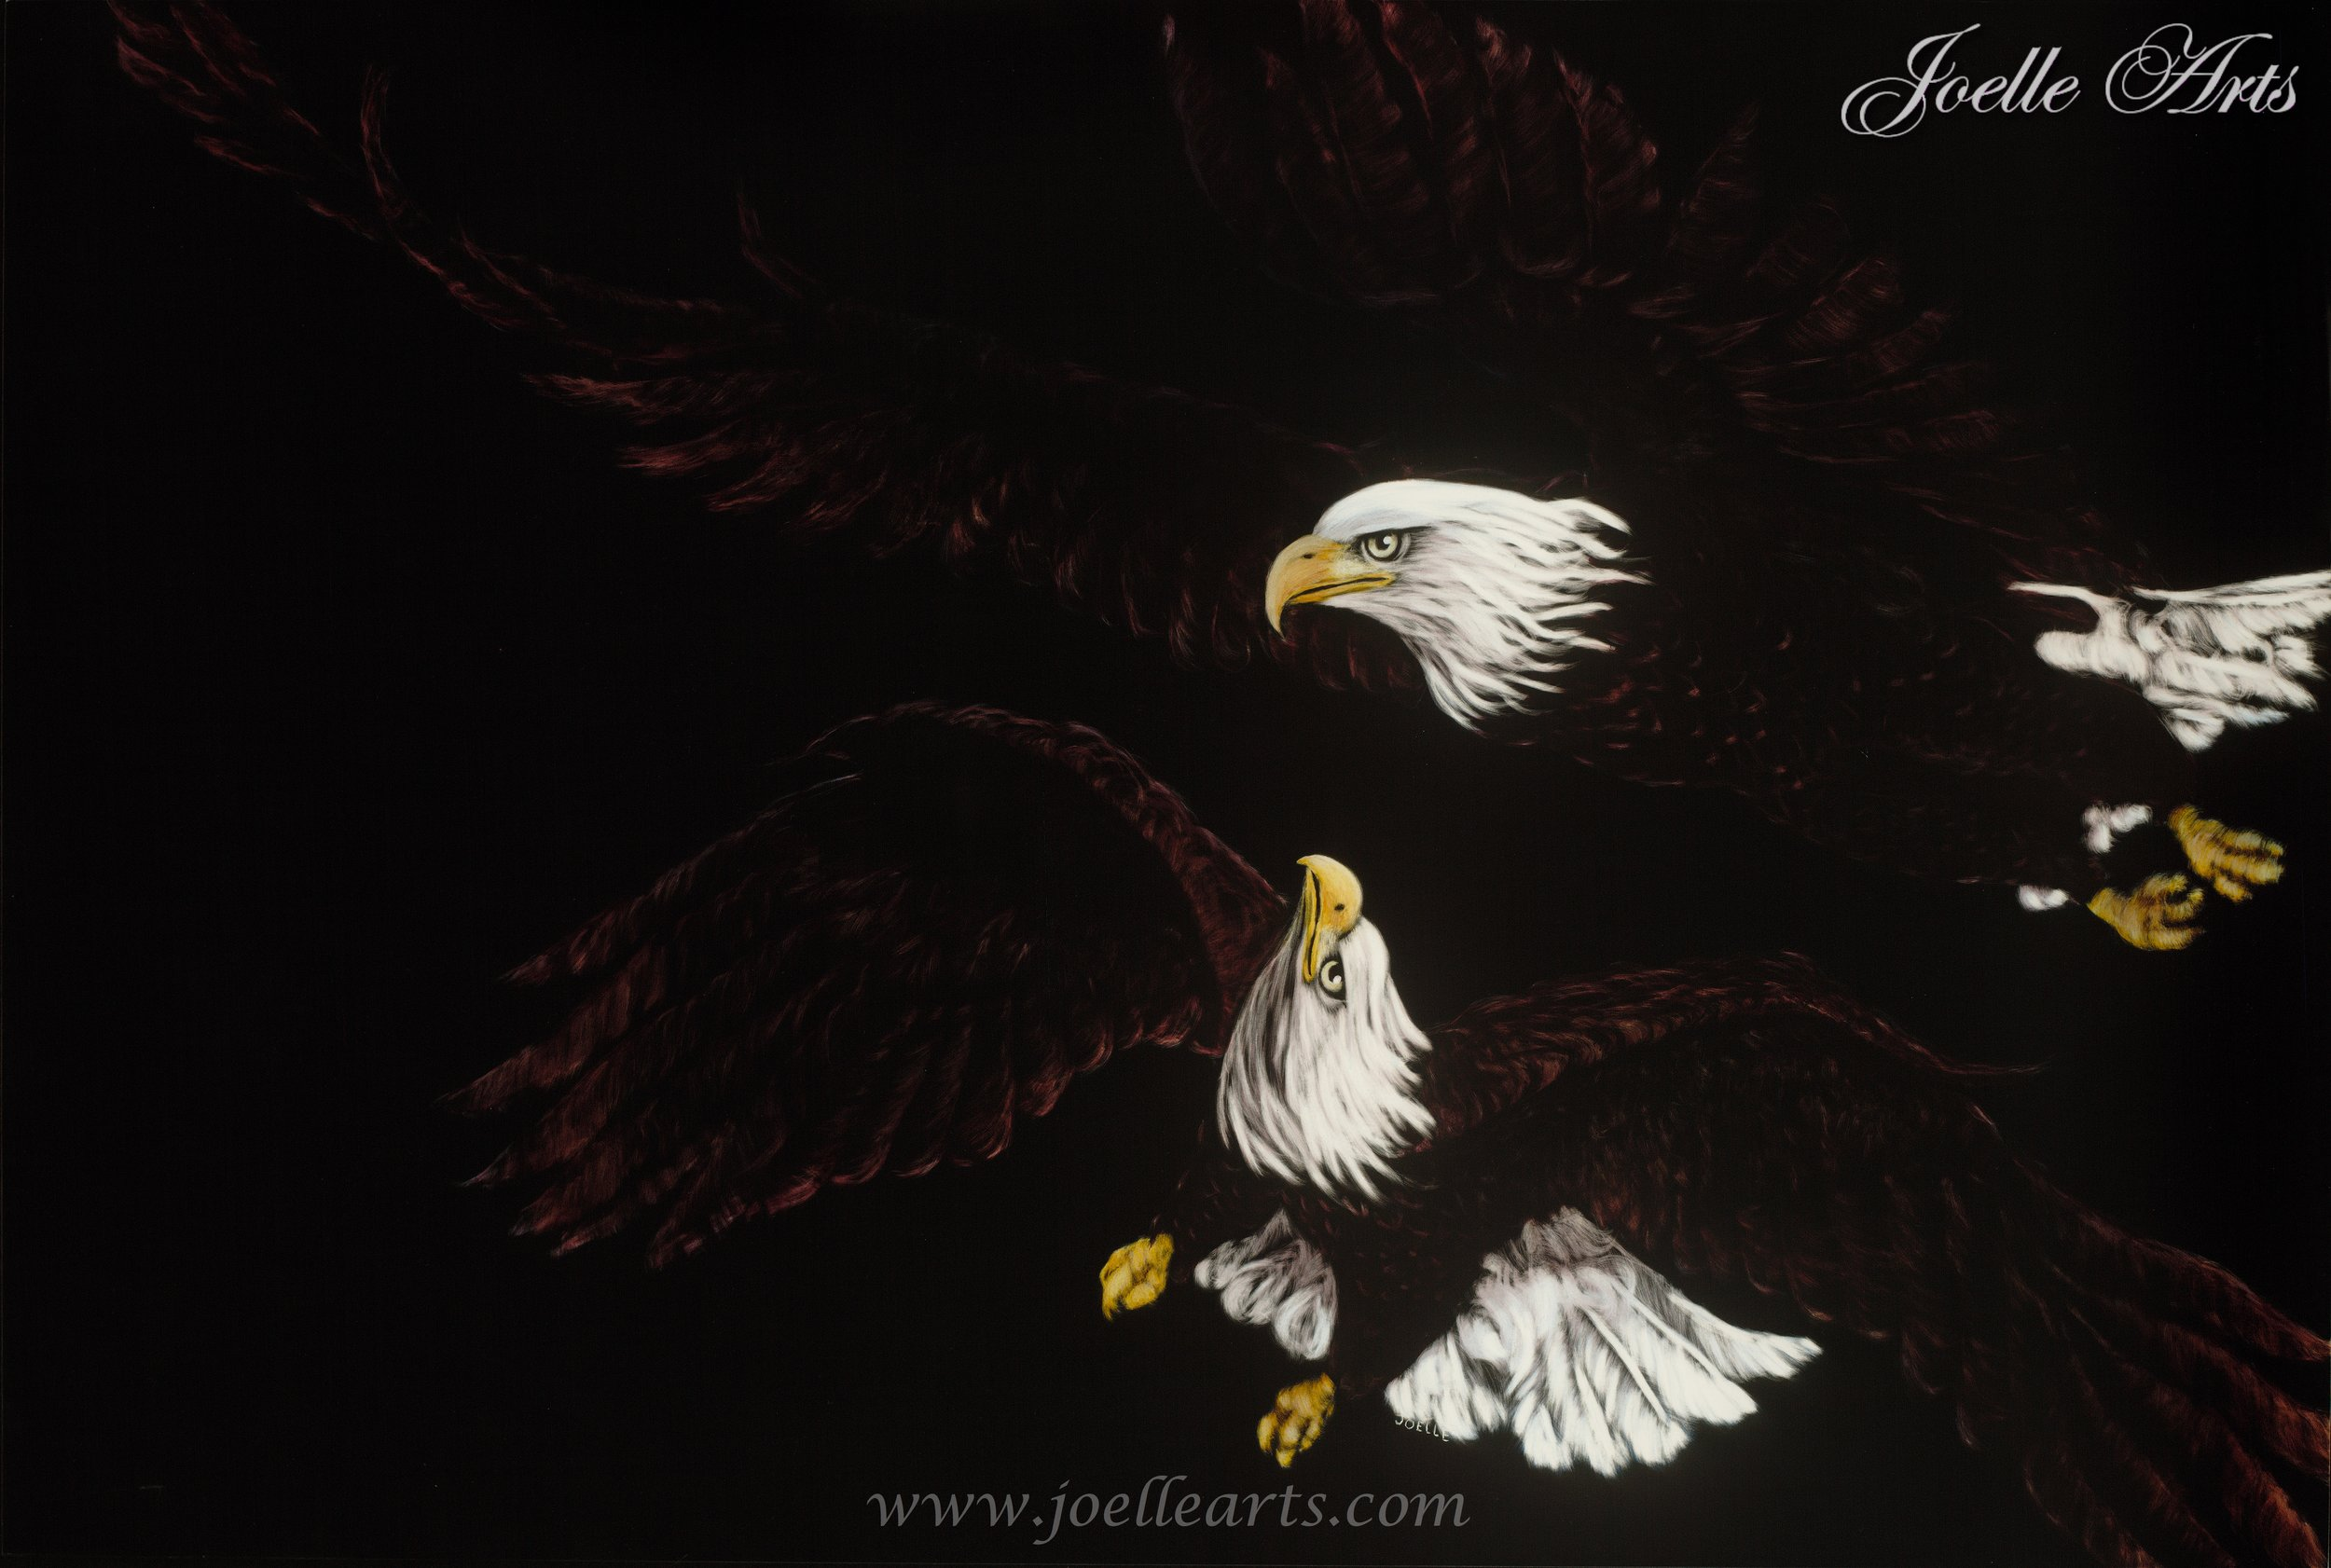 """""""Ed's Eagles"""" - Year: 2014Size: 24""""x 36"""""""